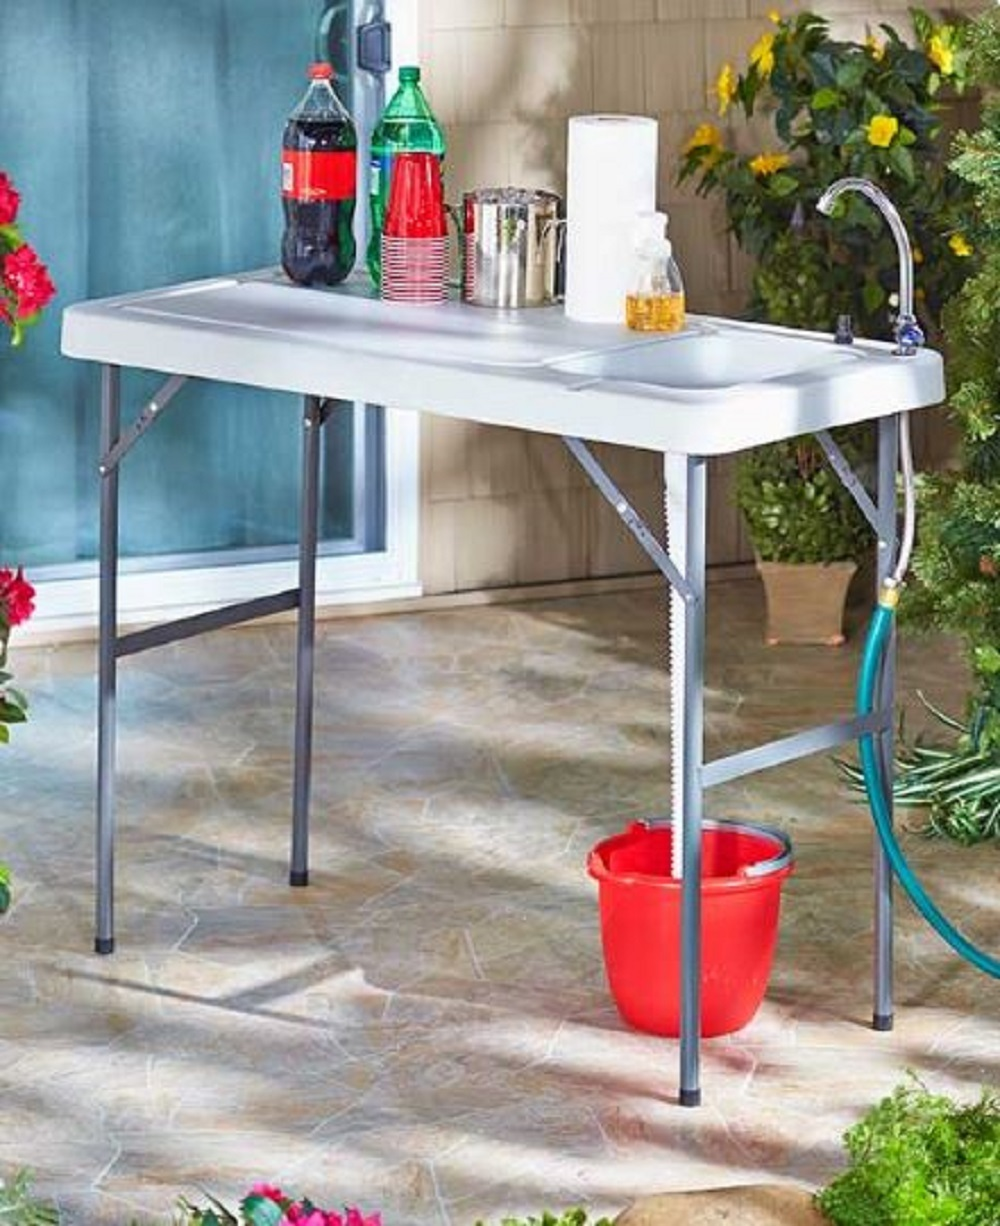 Outdoor Sink Serving Table Garden Potting Bench Camp Prep Game Meat Portable NEW